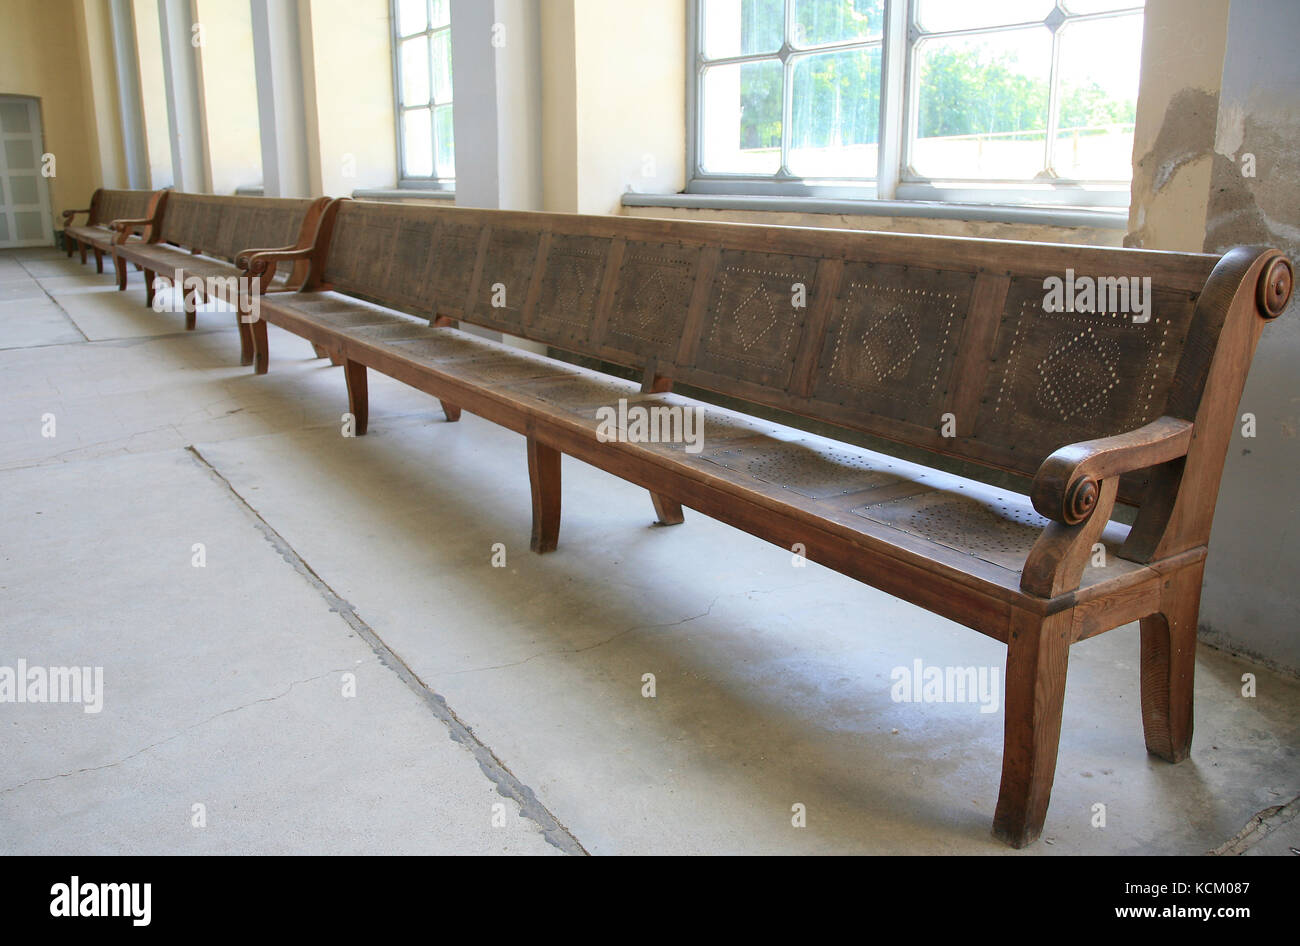 Prime Long Antique Wooden Bench In A Church Stock Photo 162708455 Caraccident5 Cool Chair Designs And Ideas Caraccident5Info